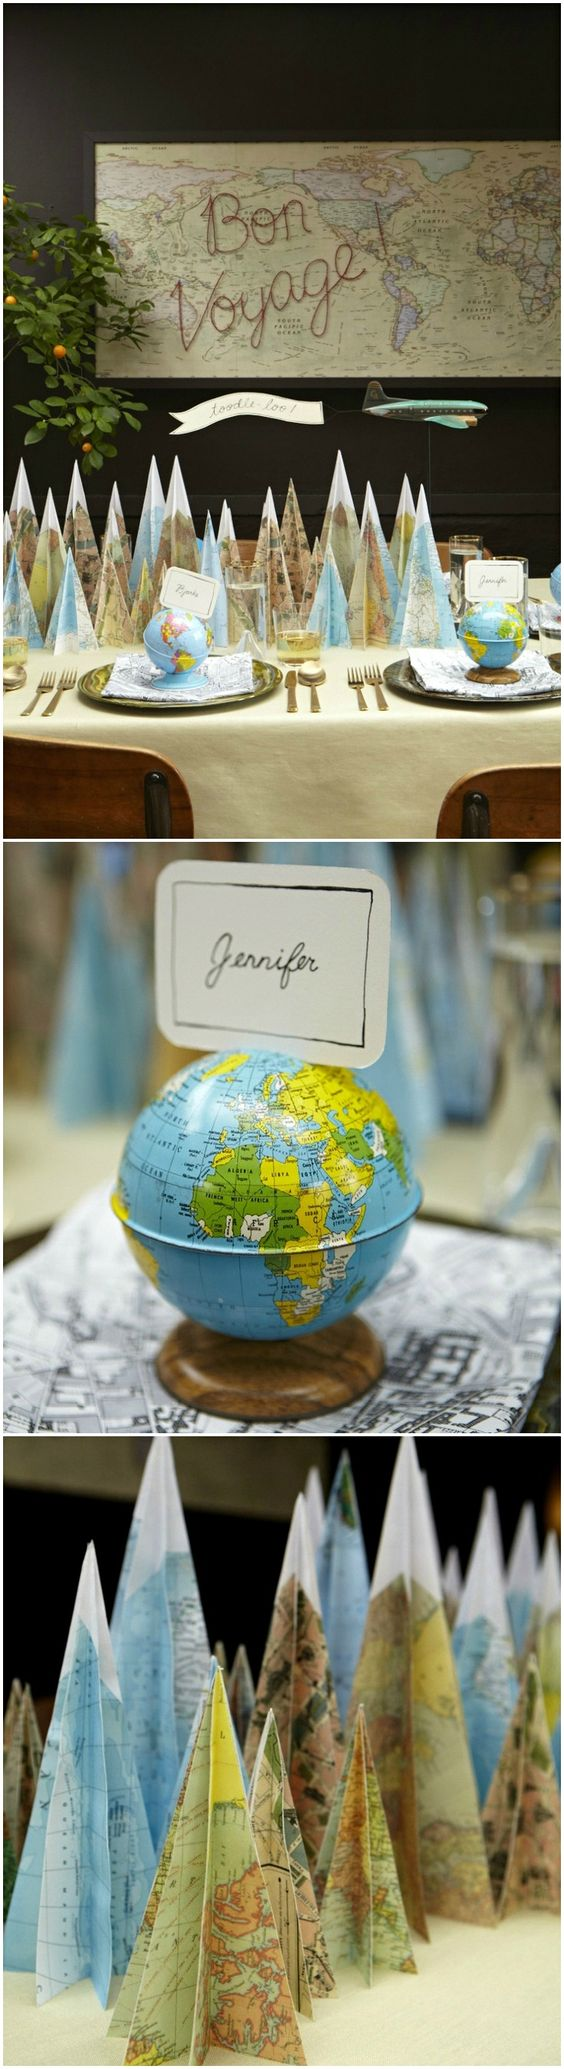 Bon voyage maps and voyage on pinterest for Decoration voyage